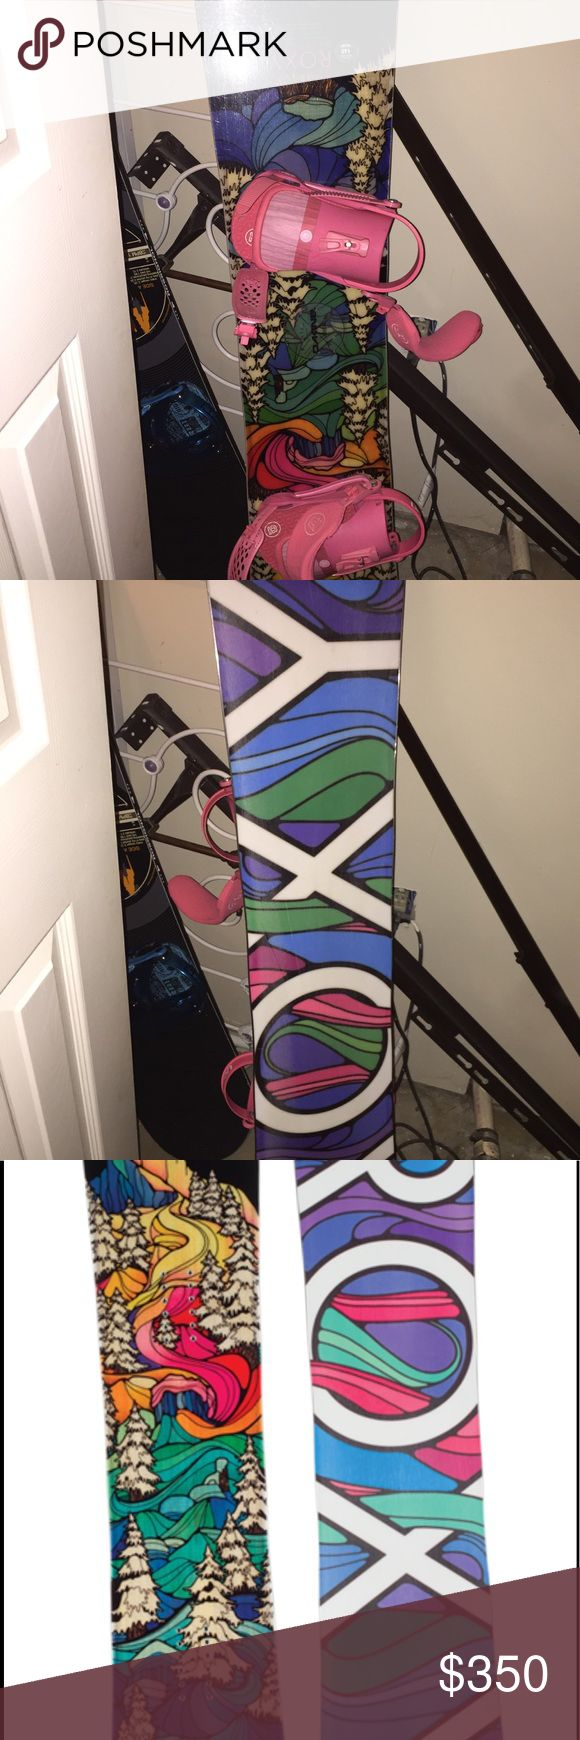 Roxy snowboard Size 148 roxy c2 btx snowboard 2016/17. Used for only one season still in very good condition. Freshly sharpened and waxed. Bindings not included. Roxy Other